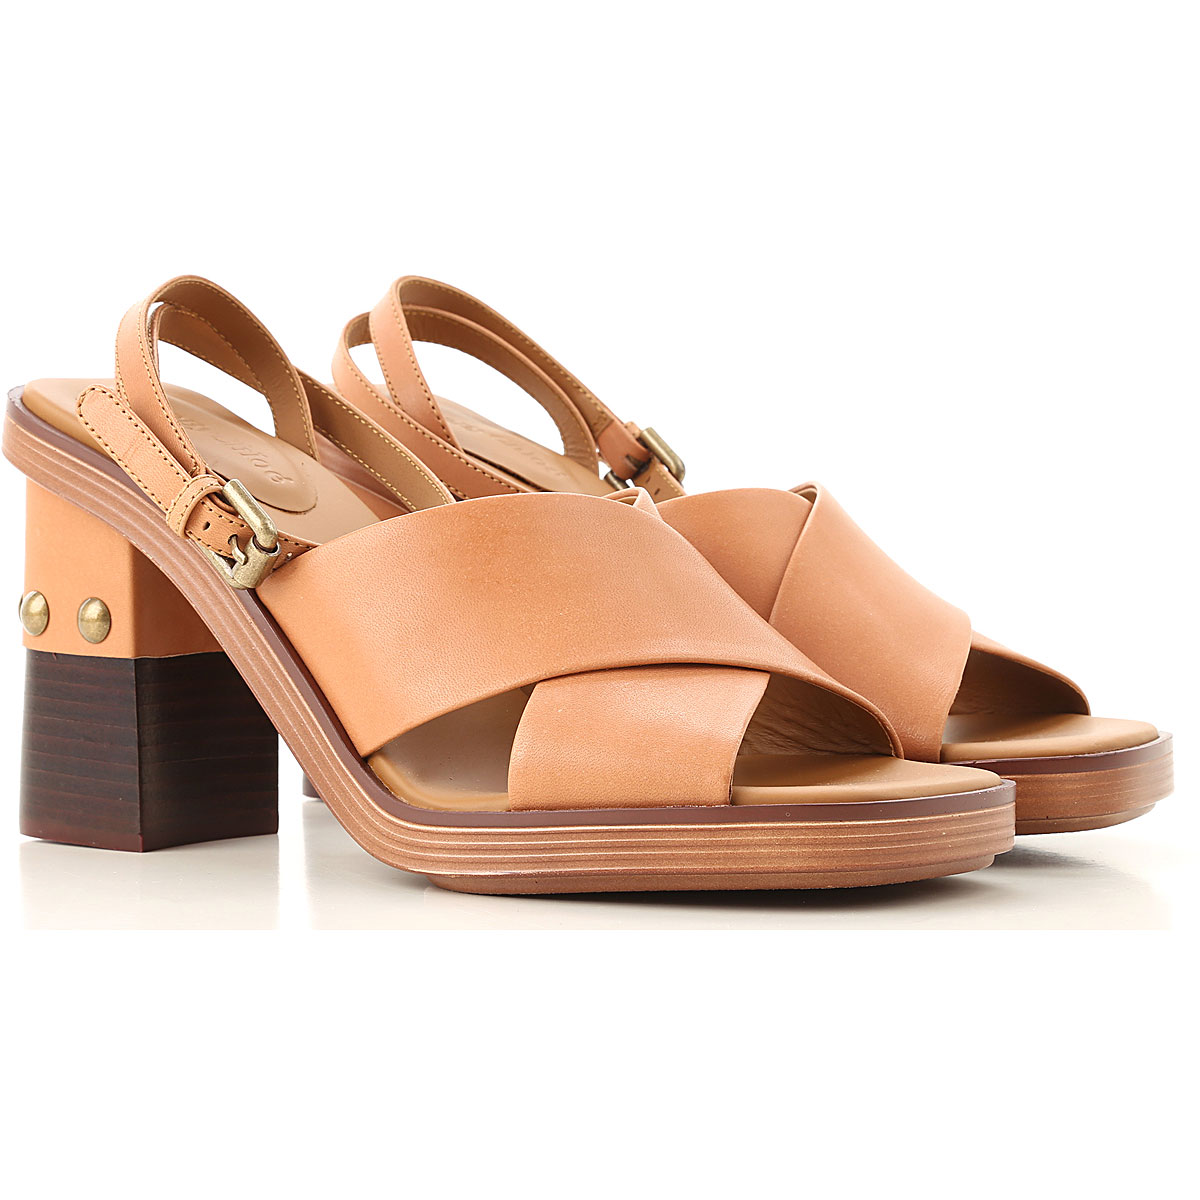 See By Chloe Sandals for Women Brown USA - GOOFASH